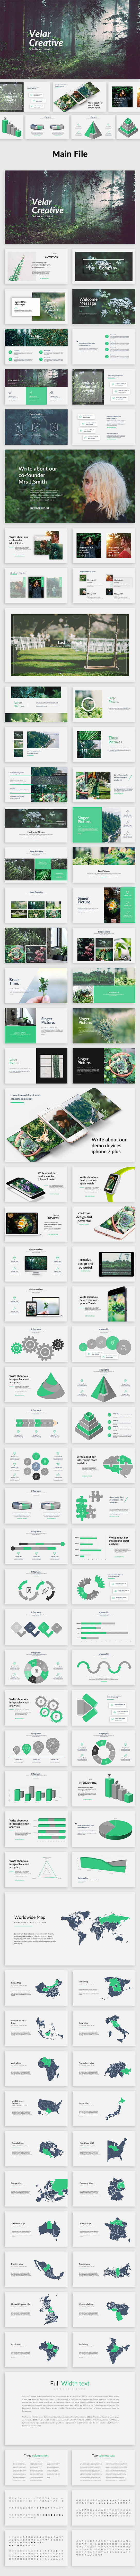 Velar - Creative Powerpoint Template - Creative PowerPoint Templates